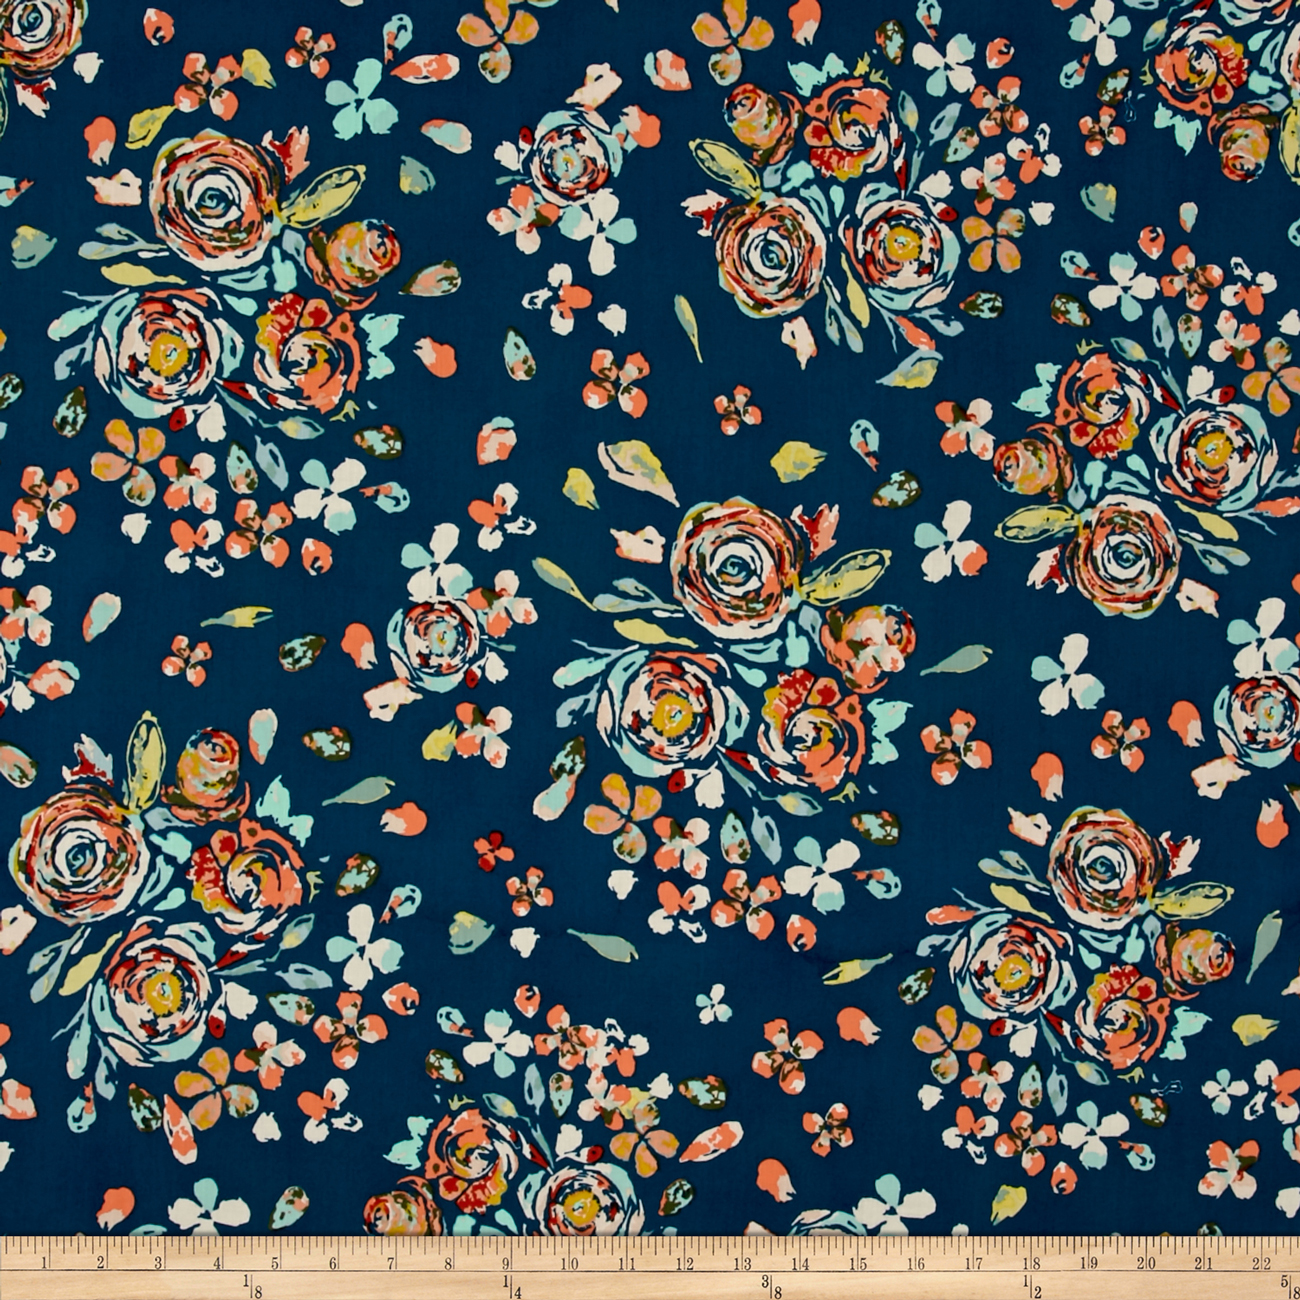 Art Gallery Fleet & Flourish Voile Swifting Flora Swell Fabric by Art Gallery in USA